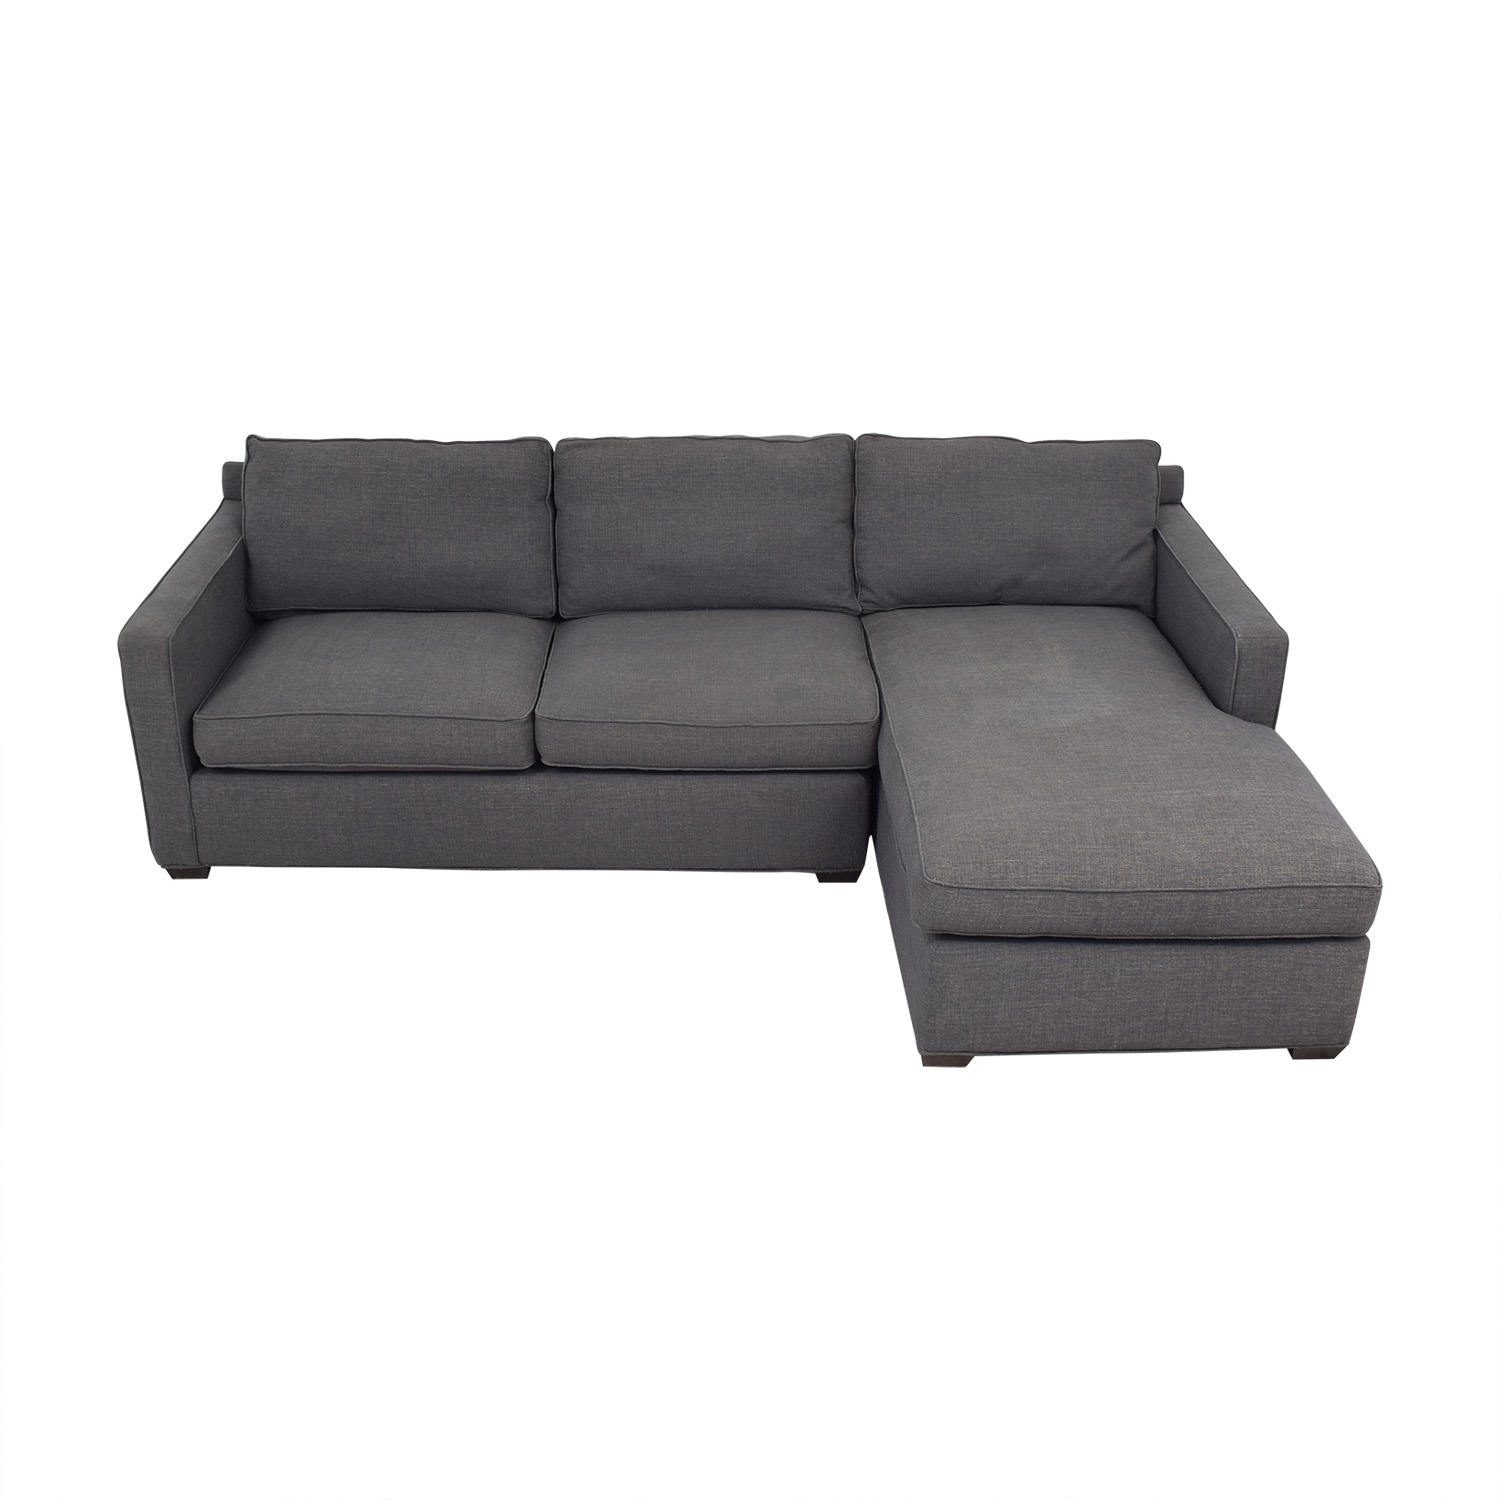 shop Crate & Barrel Two Piece Sectional Sofa Crate & Barrel Sofas